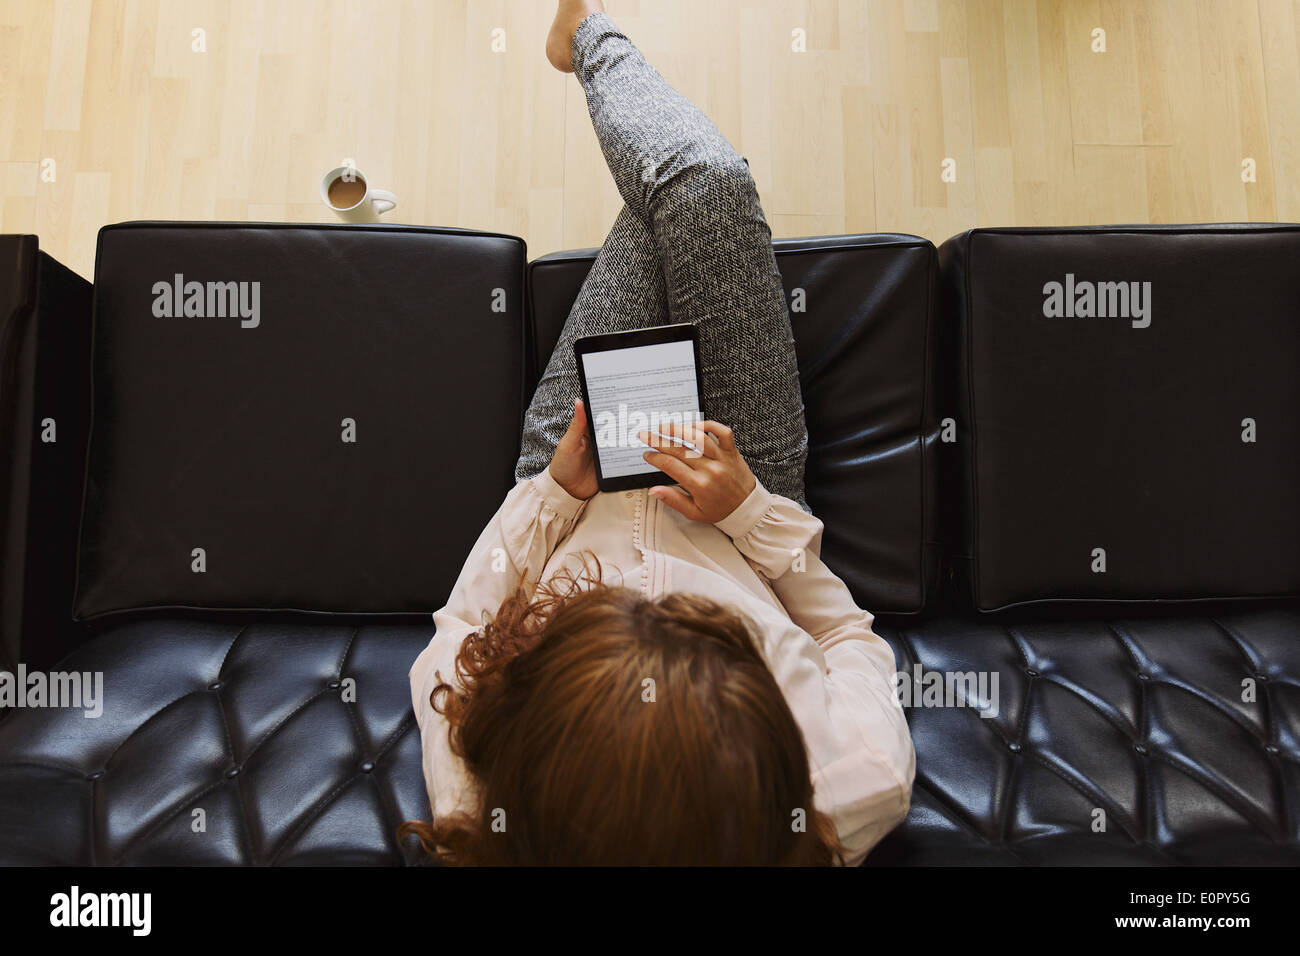 Top View of young brunette using digital tablet while sitting on a couch. Femme lisant un livre Photo Stock